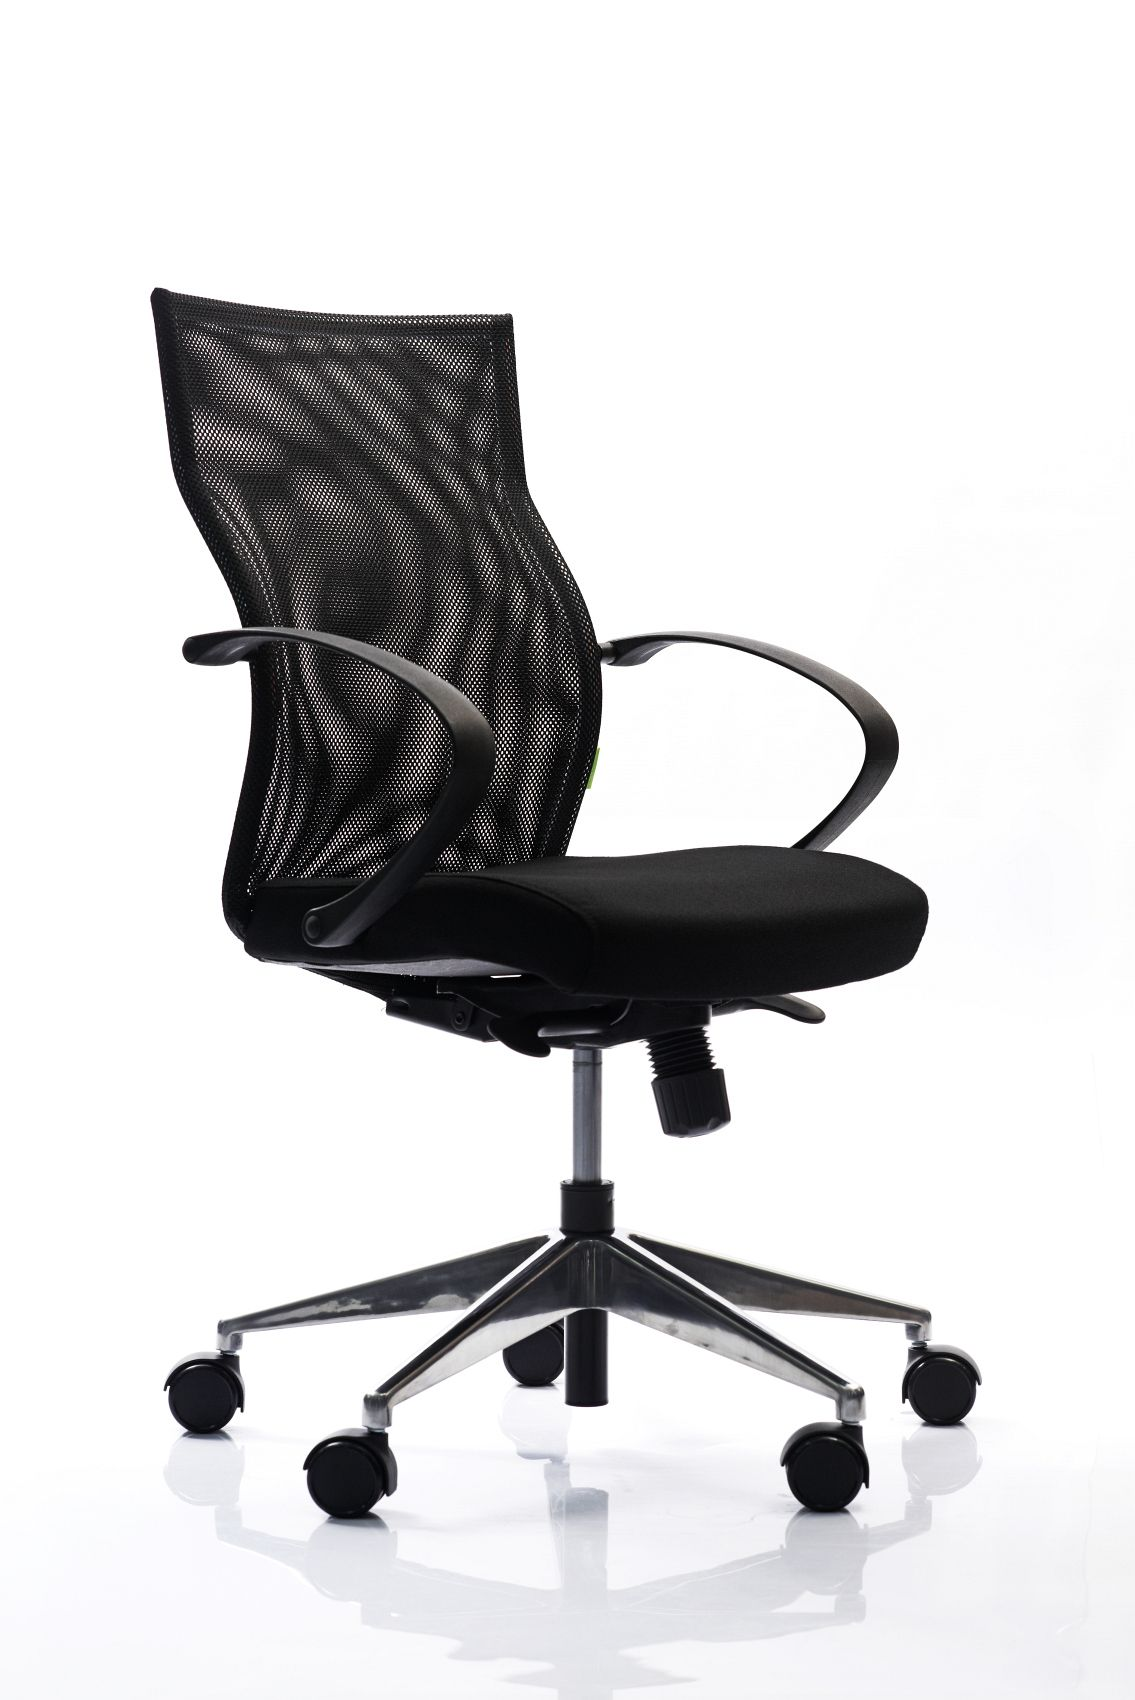 Superieur Ecko Operators Chair Office Seating, Ranges, Office Furniture, Business  Furniture